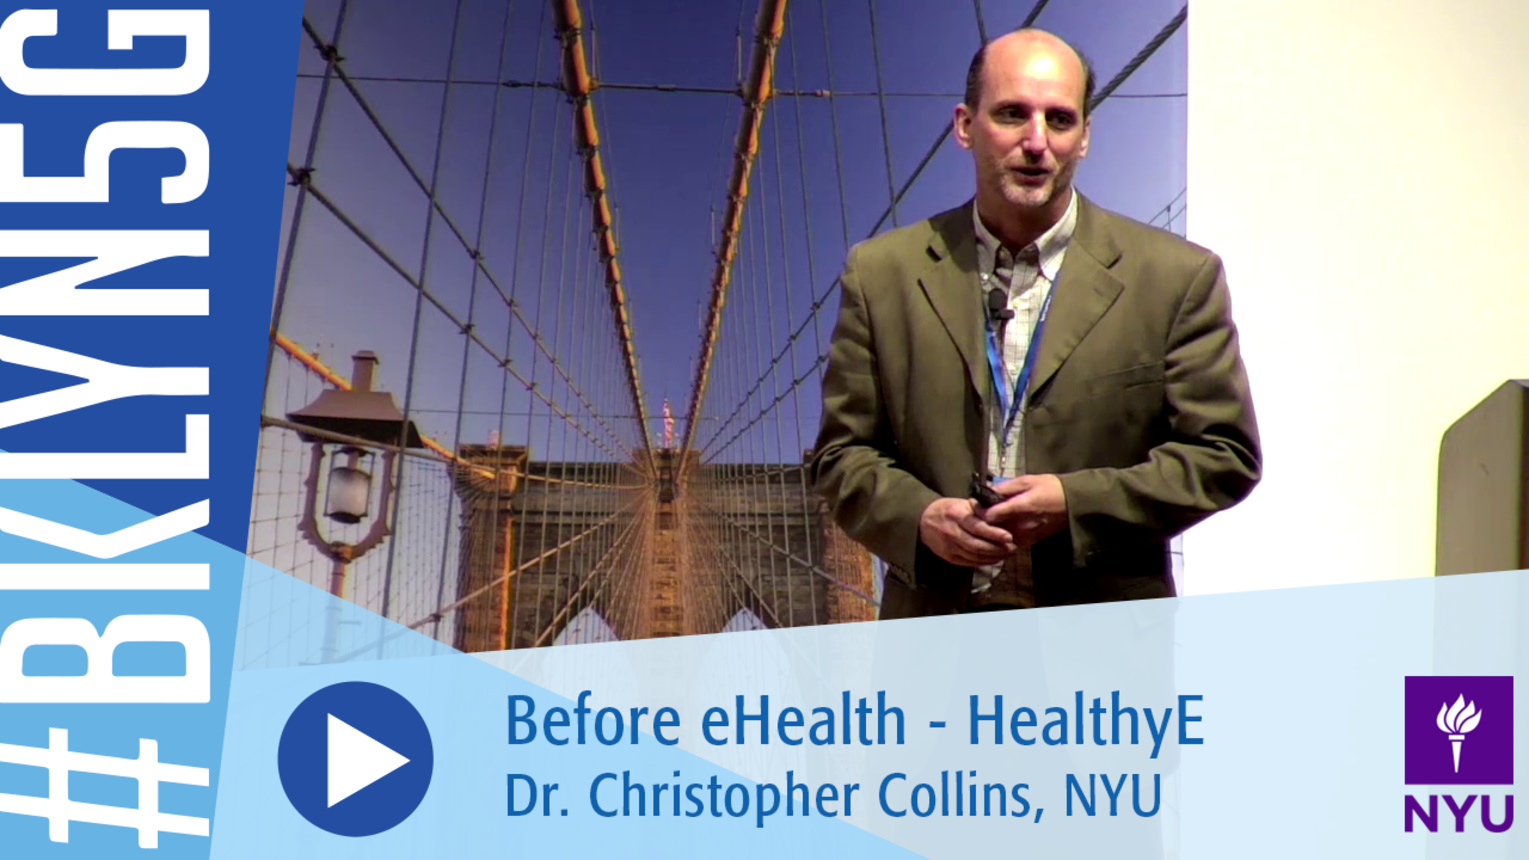 Brooklyn 5G 2016:  Dr. Christopher Collins: Before eHealth - HealthyE